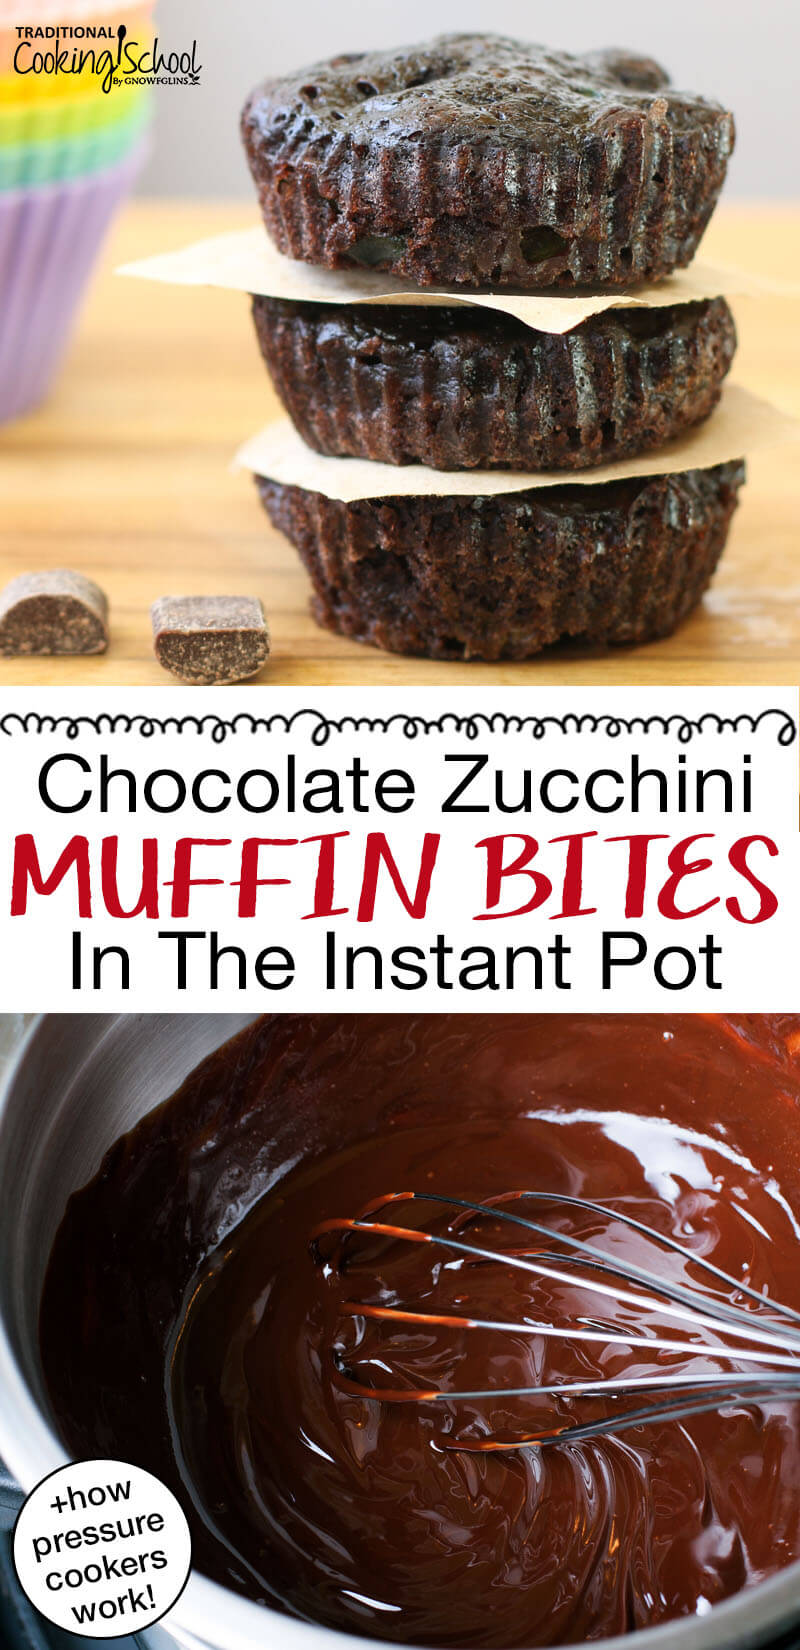 "Pinterest Pin with two images, top image is of three muffins stacked on top of each other and the other image is of a bowl filled with batter and a whisk. Text overlay says, ""Chocolate Zucchini Muffin Bites In The Instant Pot + how pressure cookers work!"""